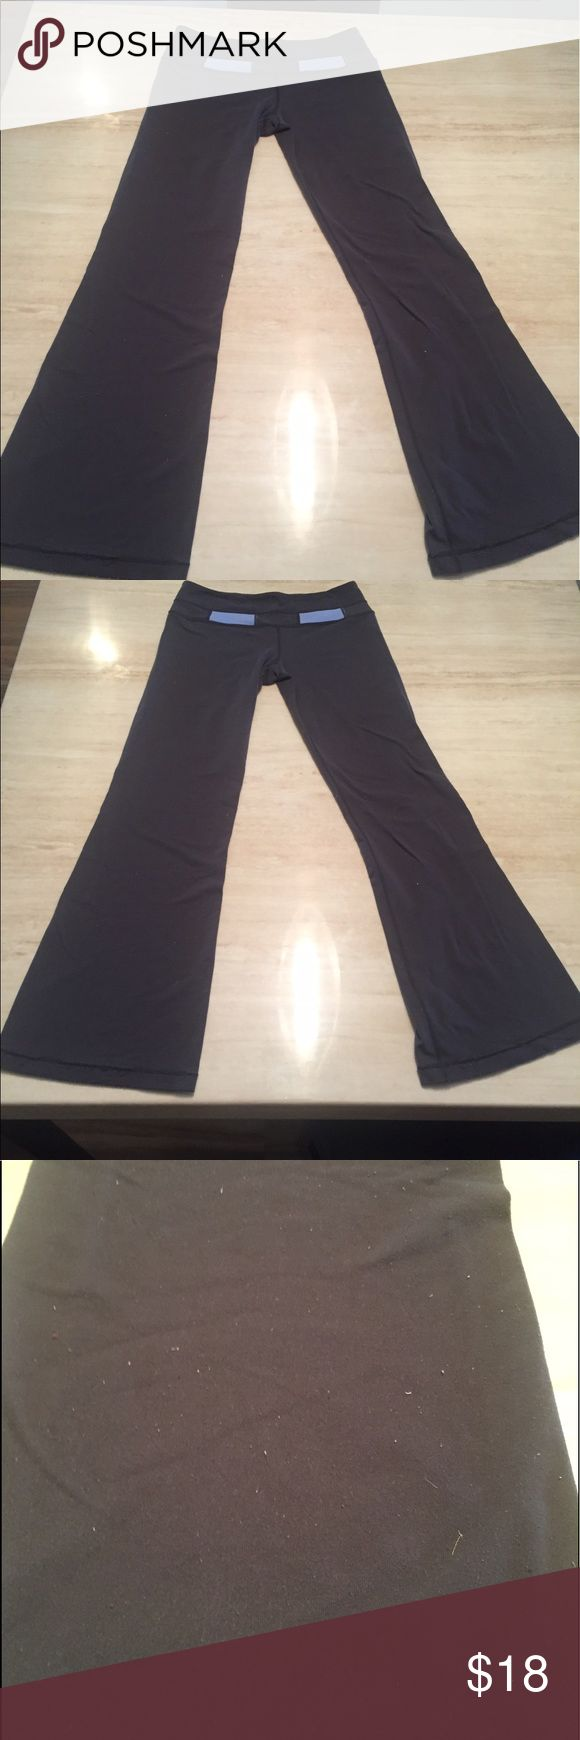 """Lululemon Gray / Baby Blue yoga Pants Adorable pair of Lululemon Gray with Baby Blue Reflector yoga pants. I could not find the size on these but I normally wear a medium in this brand. The waist stretches to 17.5"""" with a 32"""" inseam. These have been dry cleaned but these are made of the softest most clingy material, which is impossible to get the lent removed from. The hems are not coming apart but loose threads, as shown. There is much more life to these if you can overlook the lent. These…"""